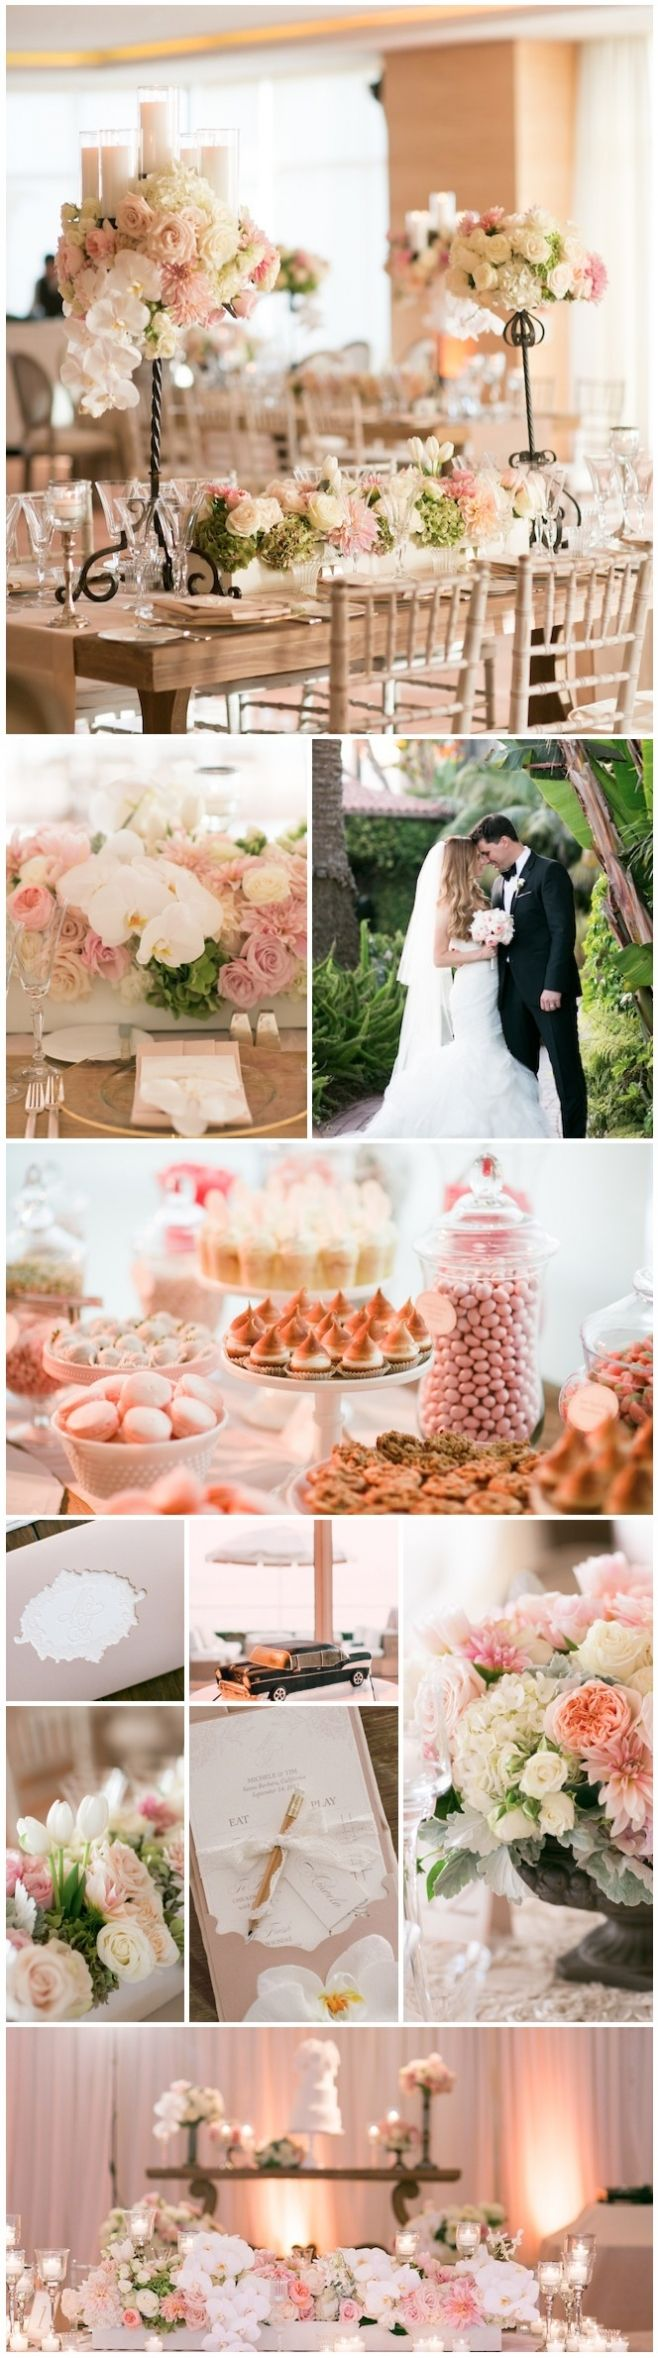 Blush pink #wedding at four seasons santa barbara in La Pacifica Ballroom with 180 degree #Oceanside views  Blush Pink- The Most Requested Wedding Color for 2013 » Ooh LaLa La Fete